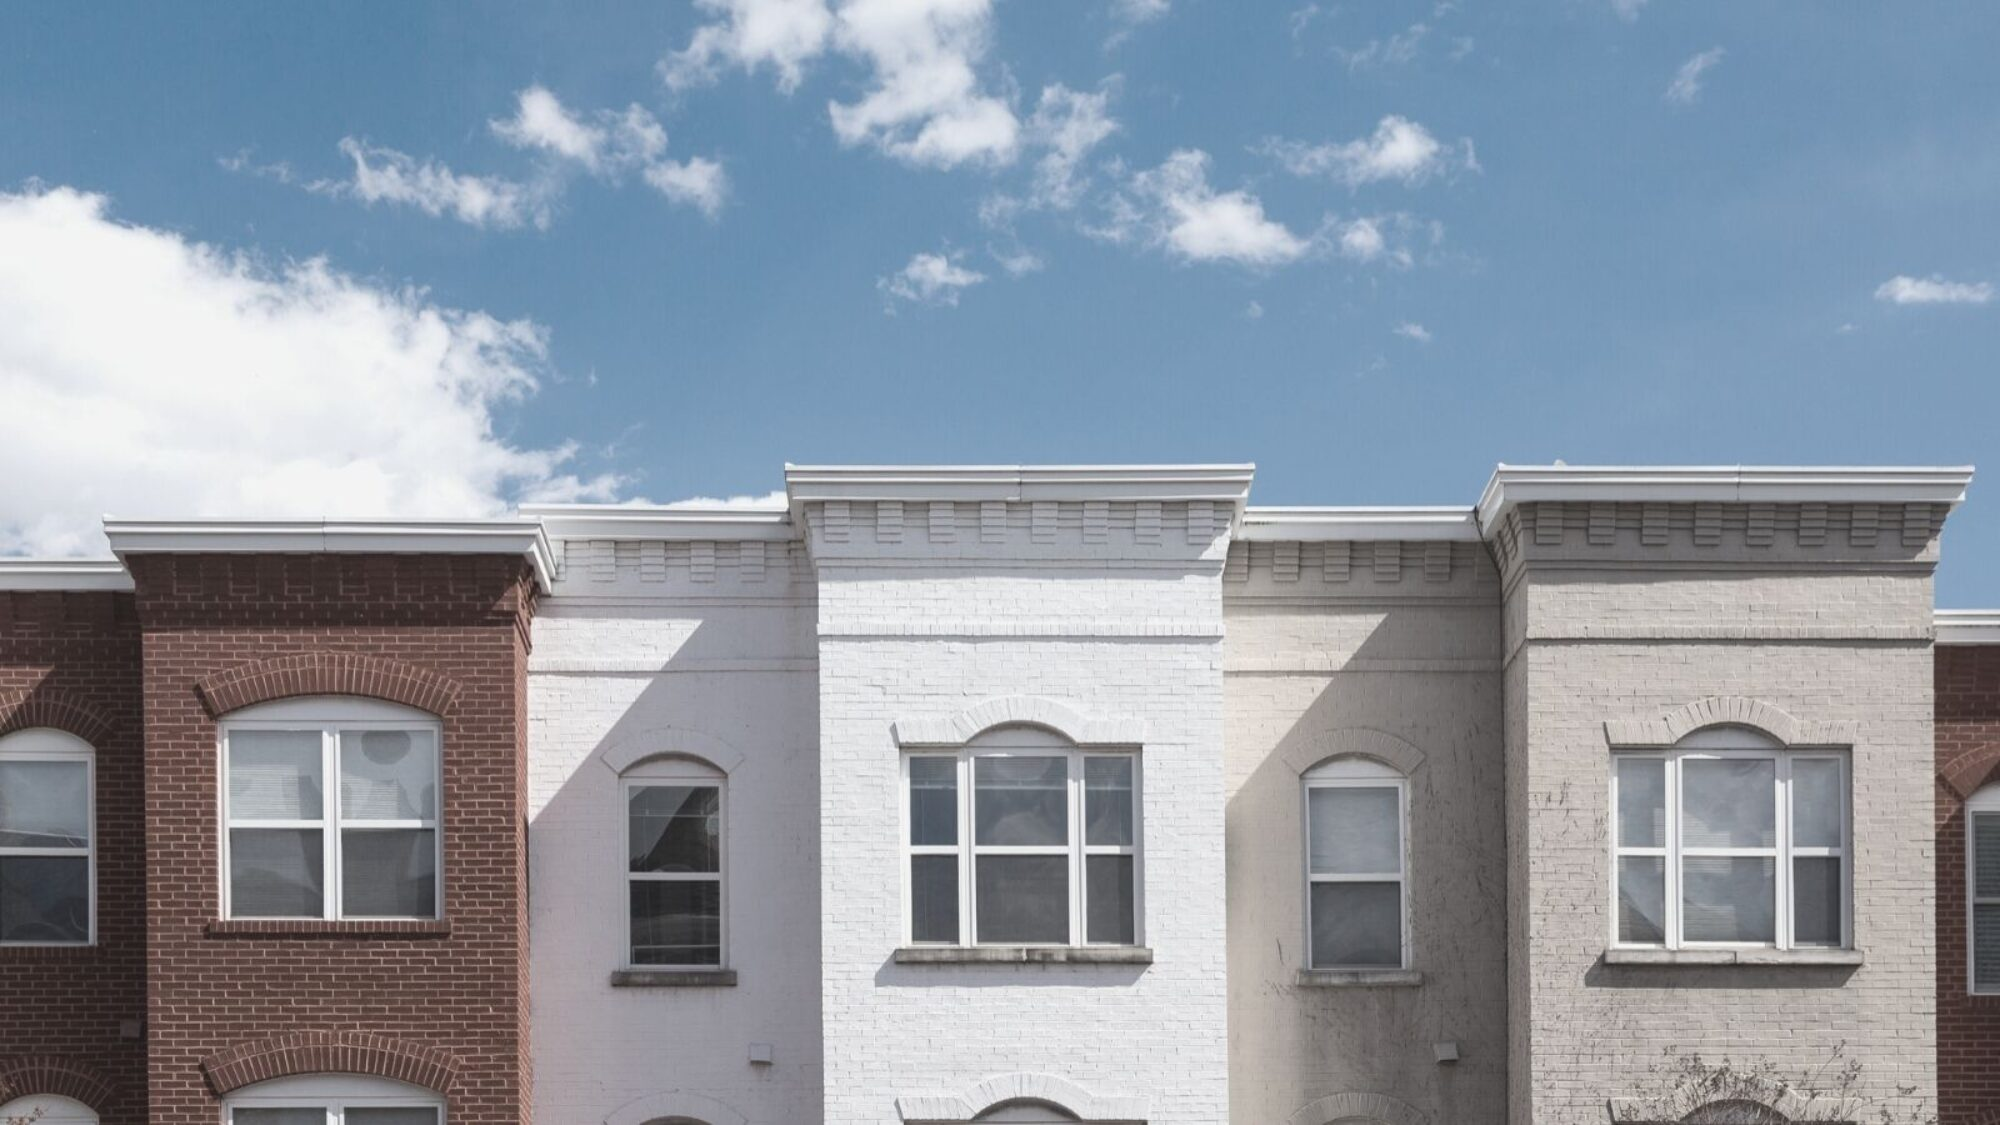 Photo of row houses in DC